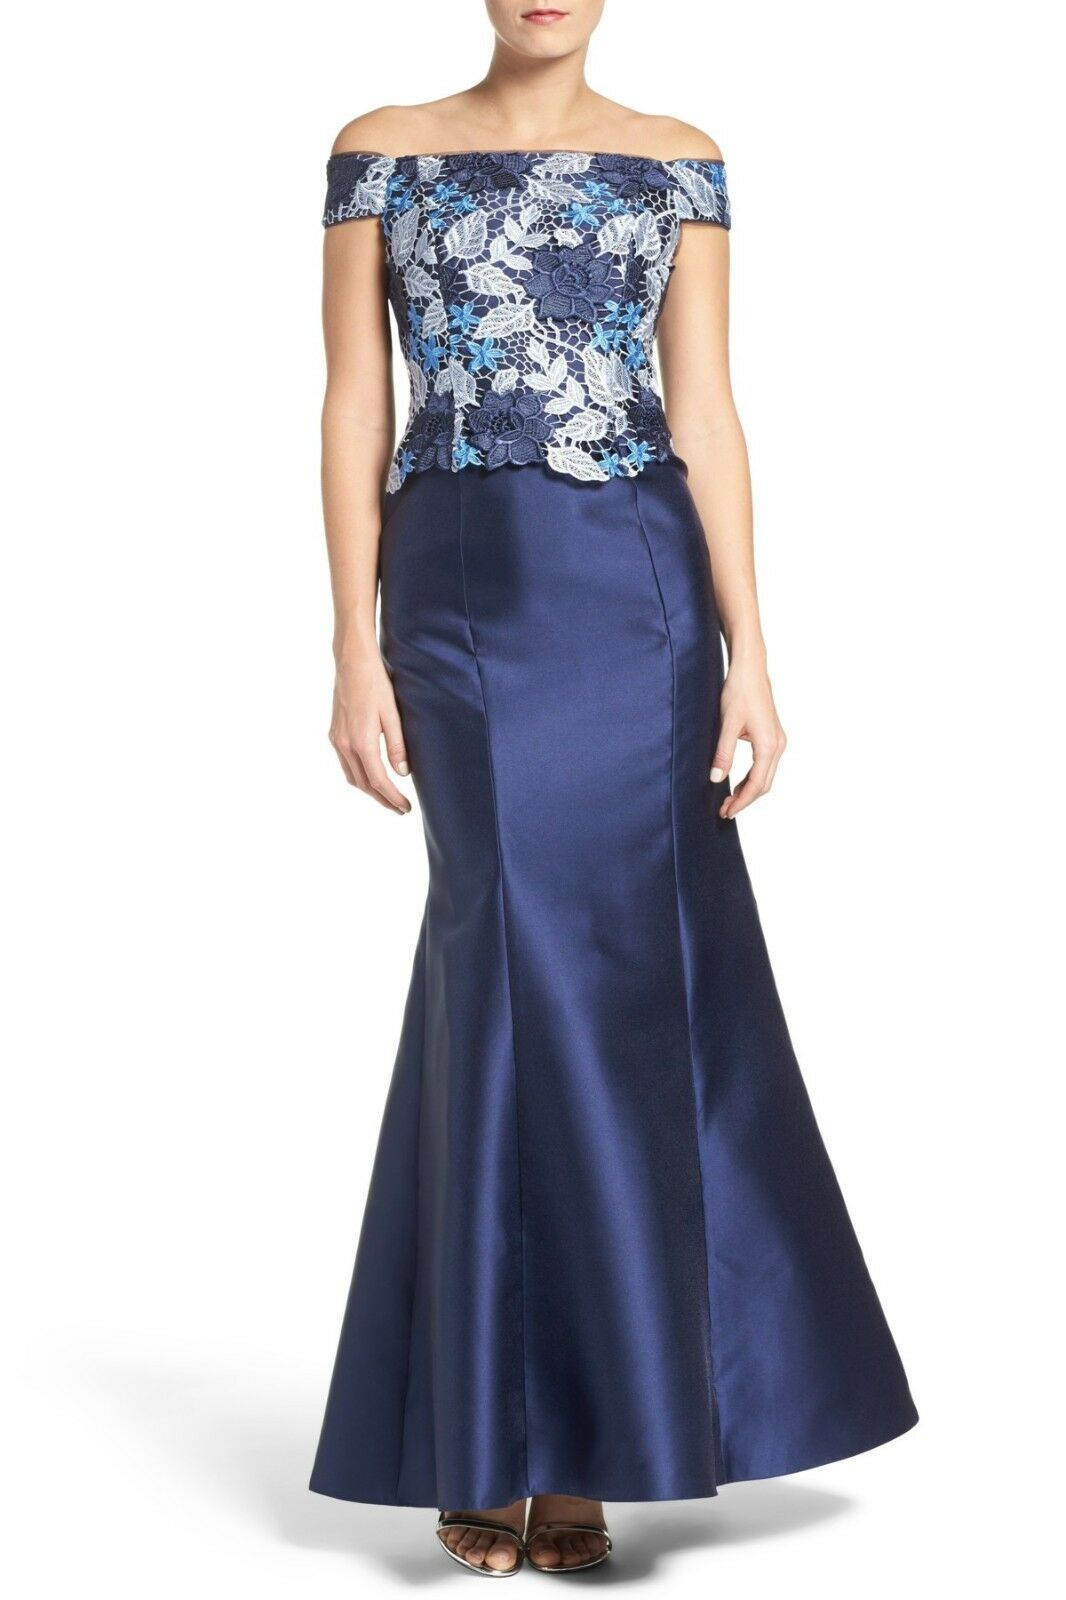 Adrianna Papell Guipure Lace & Mikado Gown (size 4)